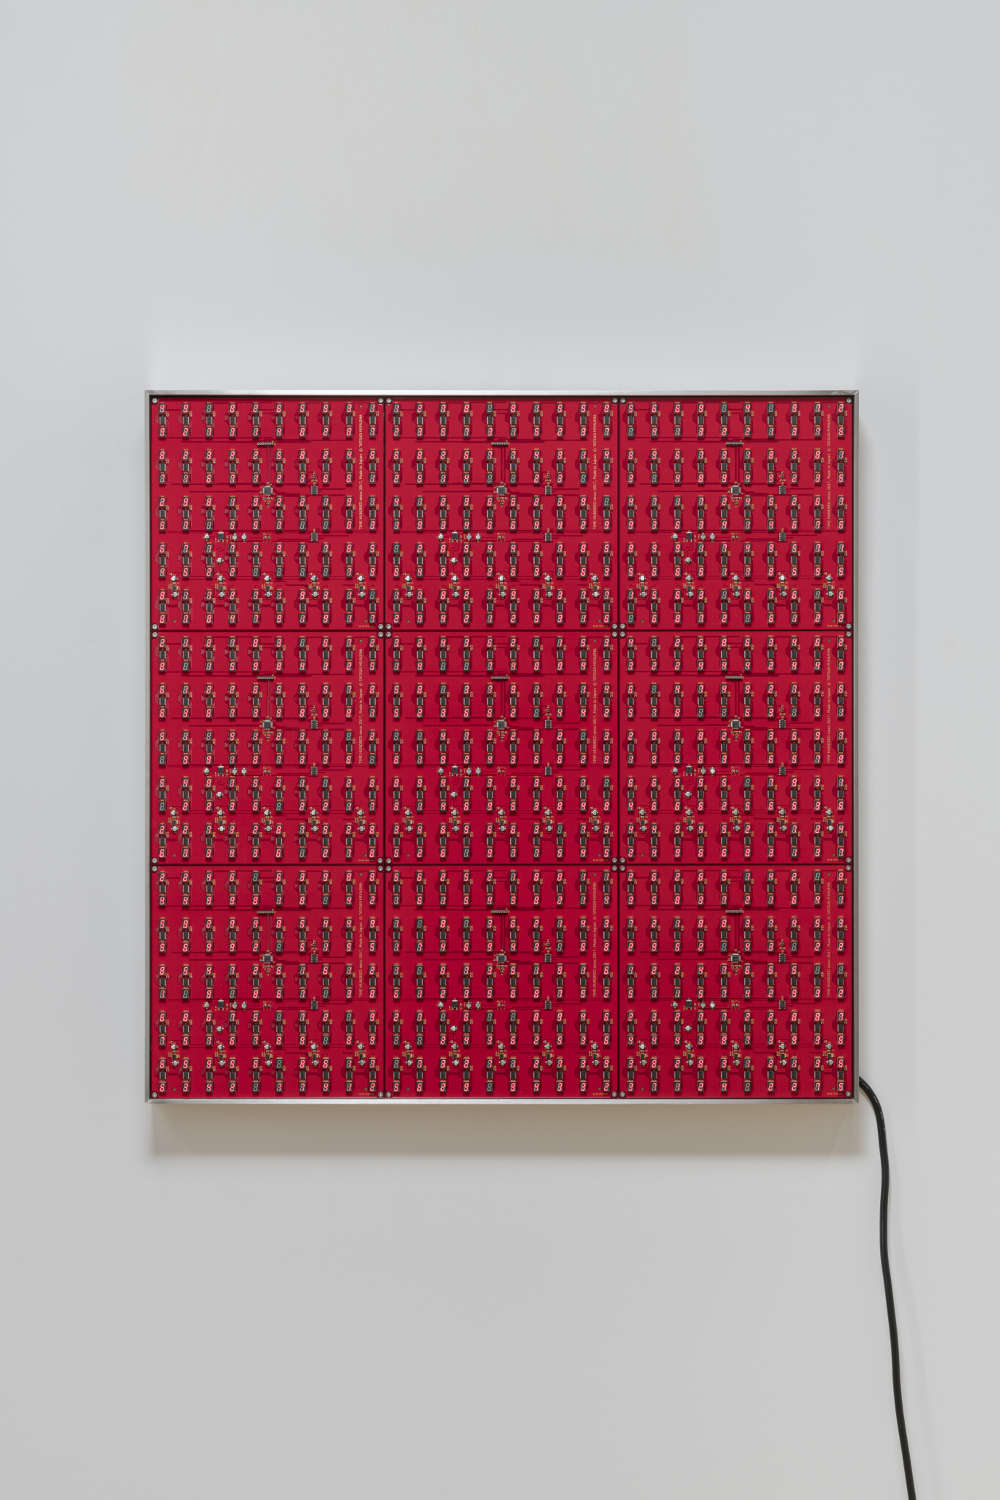 Tatsuo Miyajima, Innumerable Life/Buddha CM-02, 2018. Light Emitting Diode, IC, electric wire, steel, stainless, Transformer. LED type Time Hundred (Red) 9 plates 76.4 x 76.4 x 7.5 cm 30 x 30 x 2 7/8 in © Tatsuo Miyajima; Courtesy Lisson Gallery